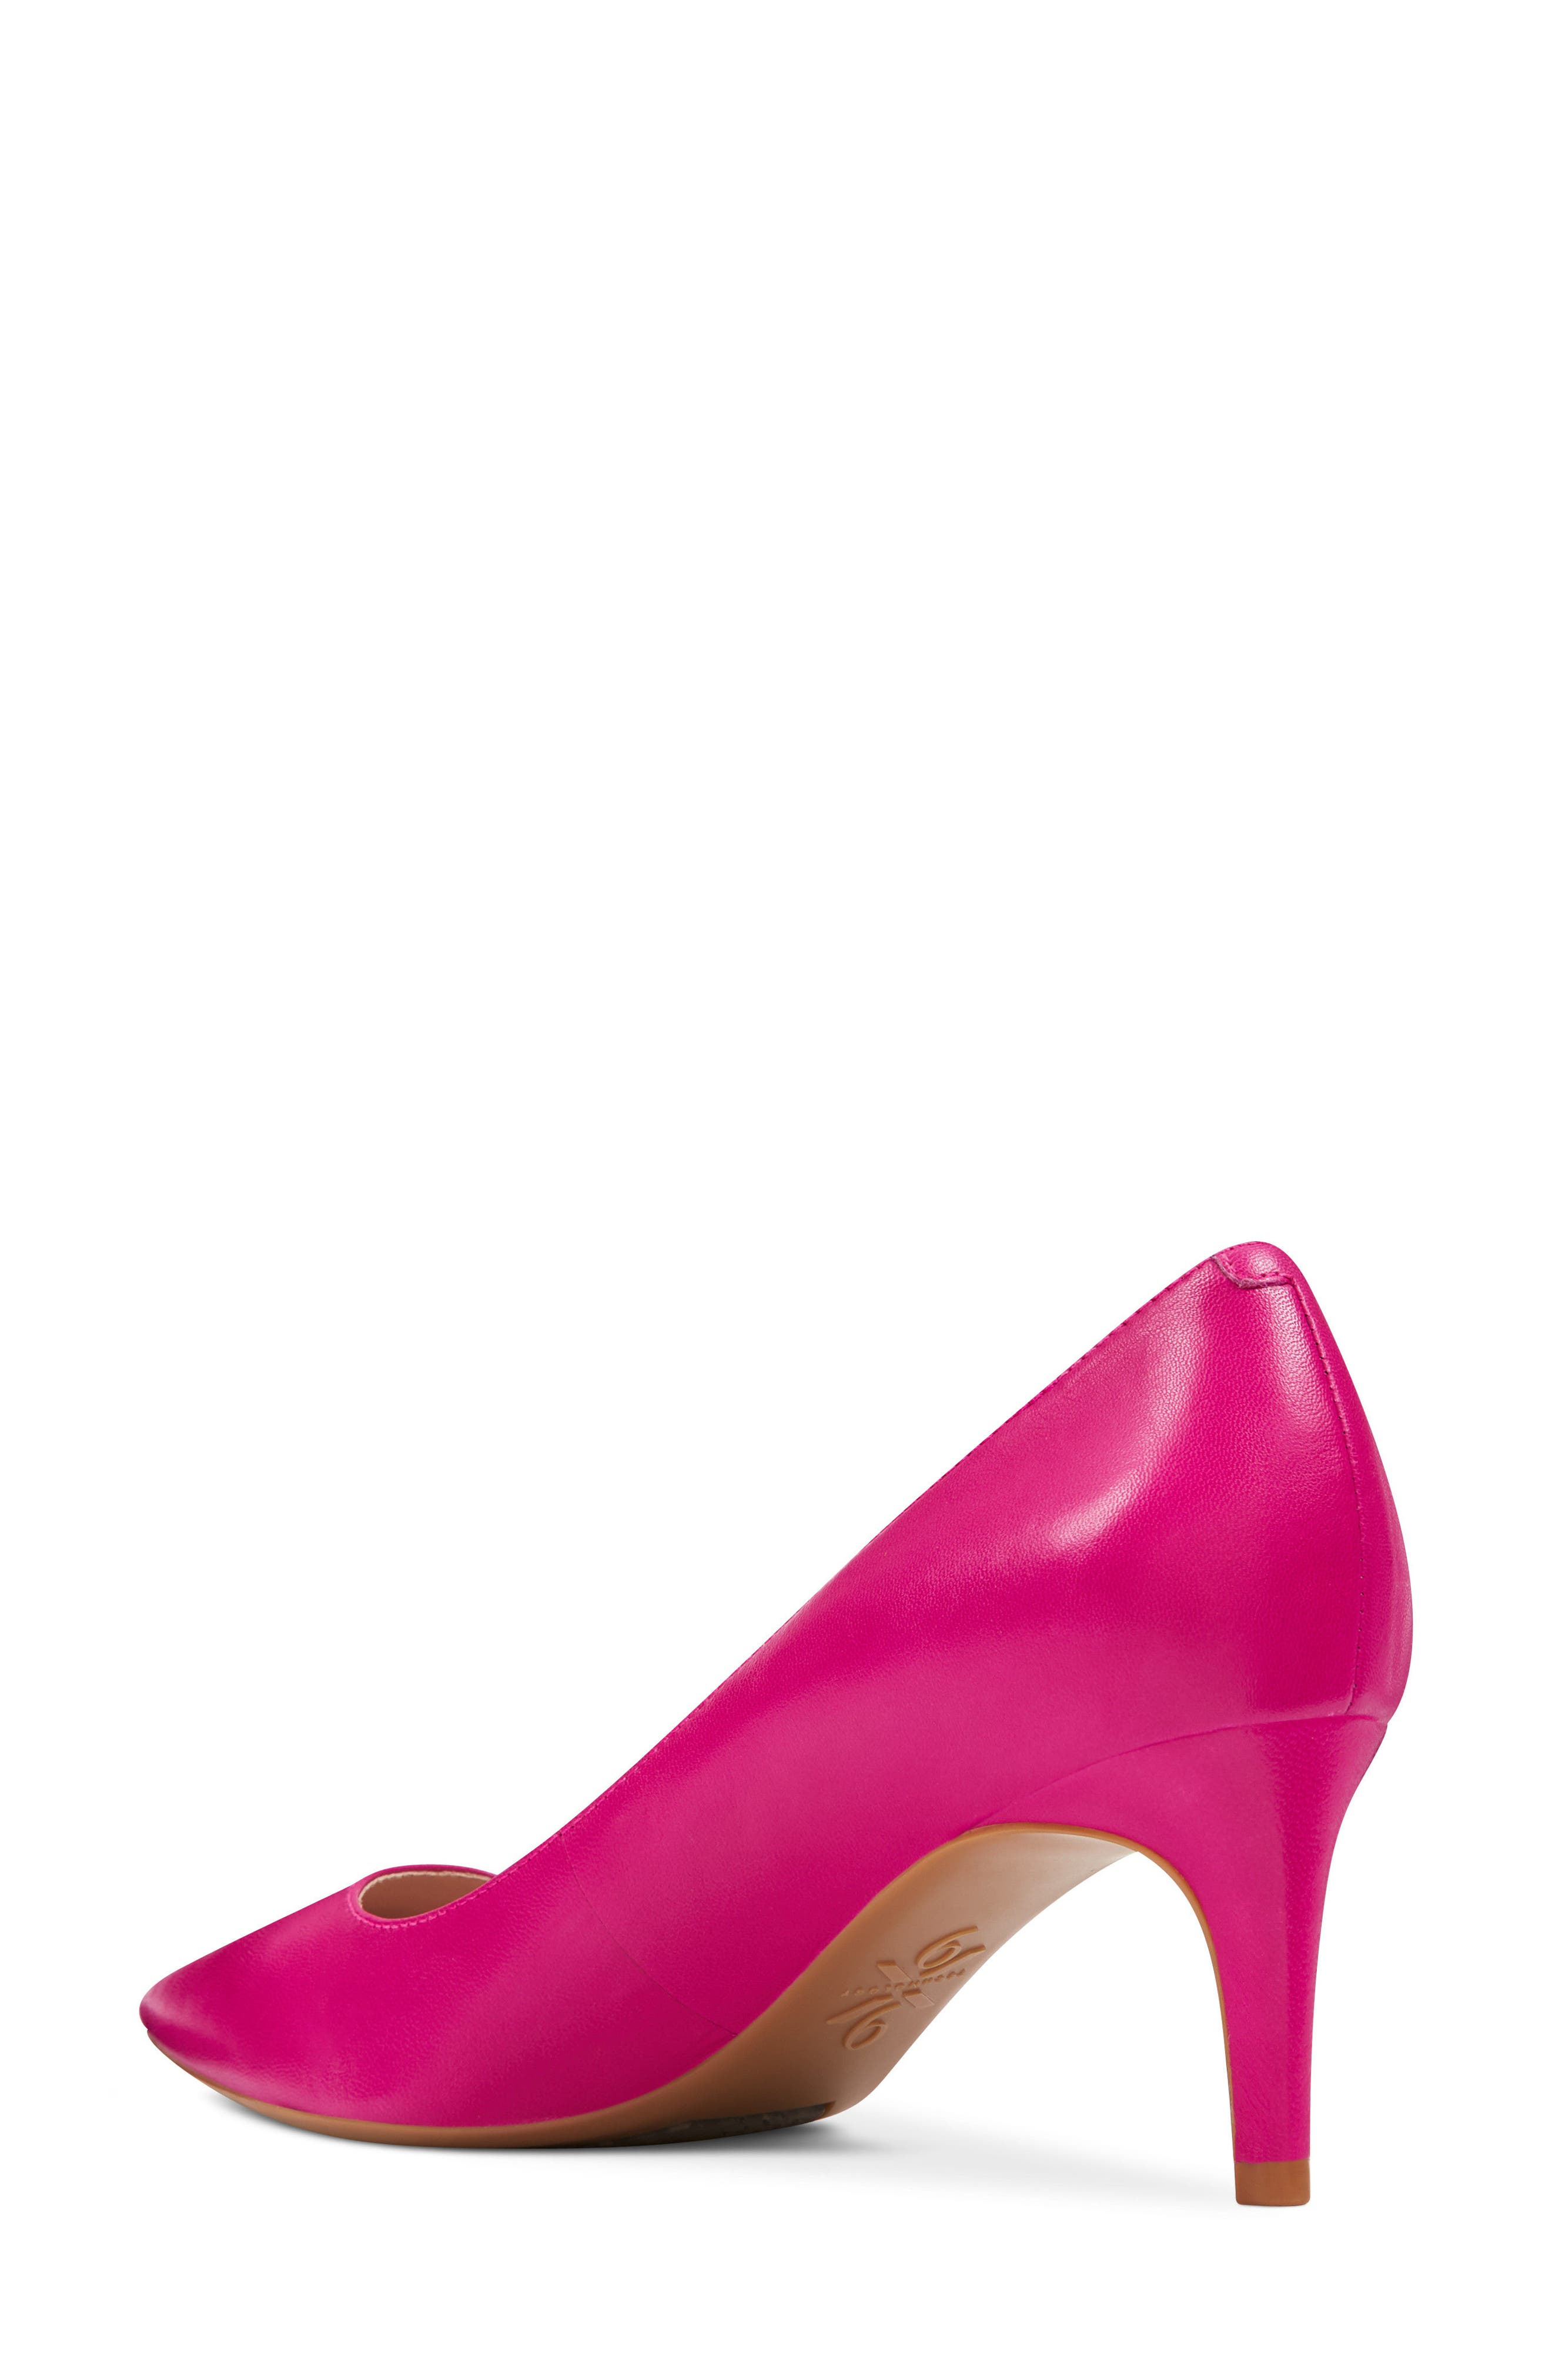 Soho Pointy Toe Pump,                             Alternate thumbnail 12, color,